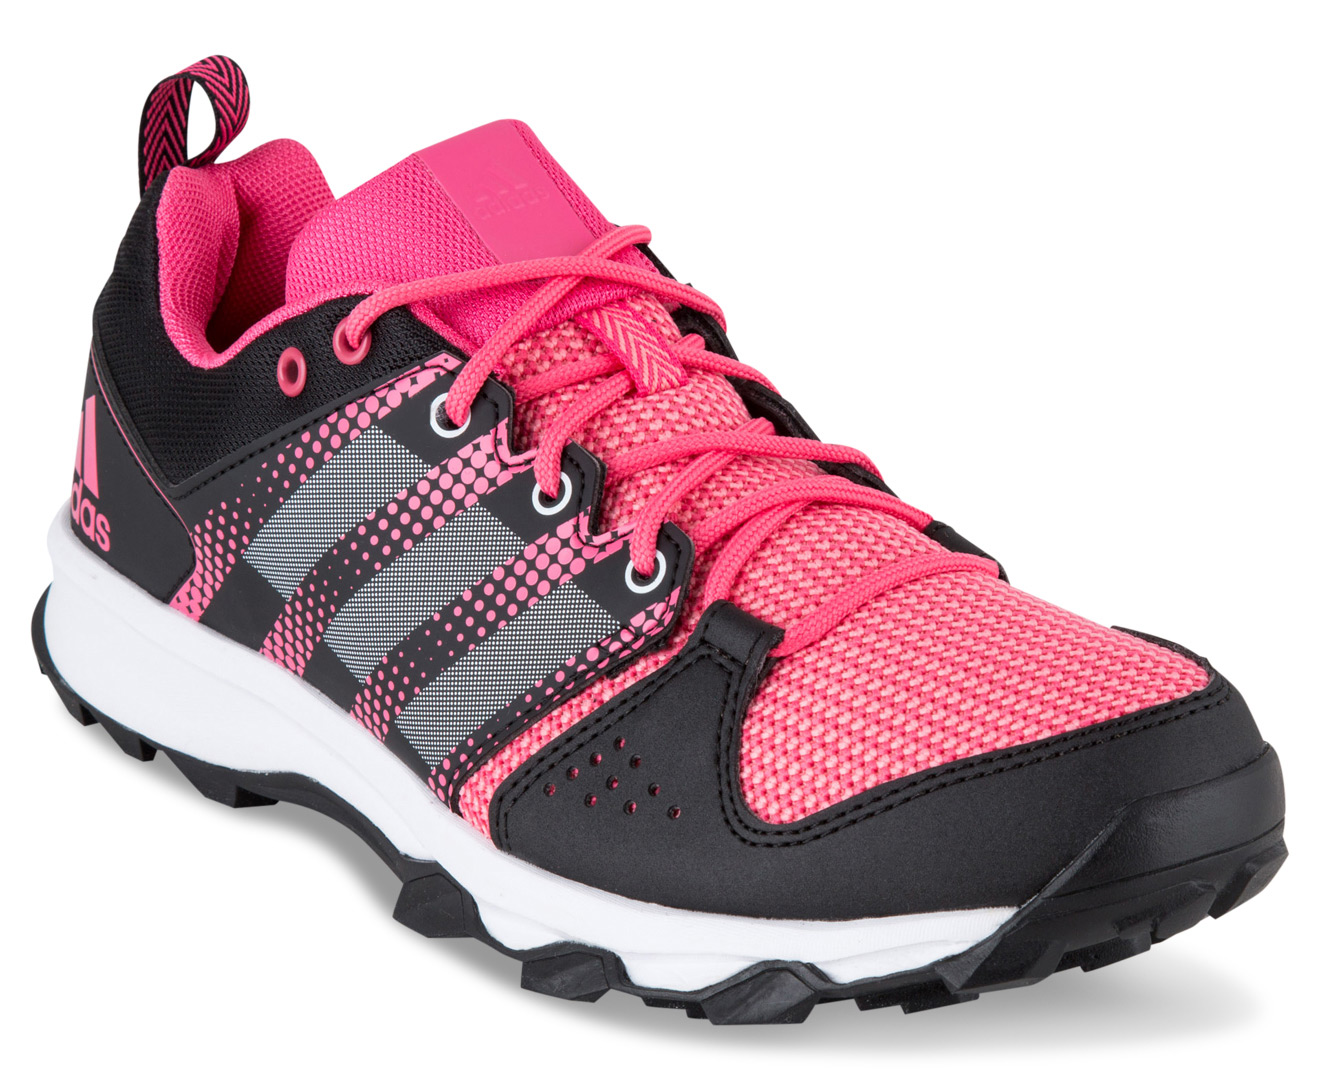 Adidas Women's Galaxy Trail Shoe - Bahia Pink/White/Ray Pink | Great daily  deals at Australia's favourite superstore | Catch.com.au